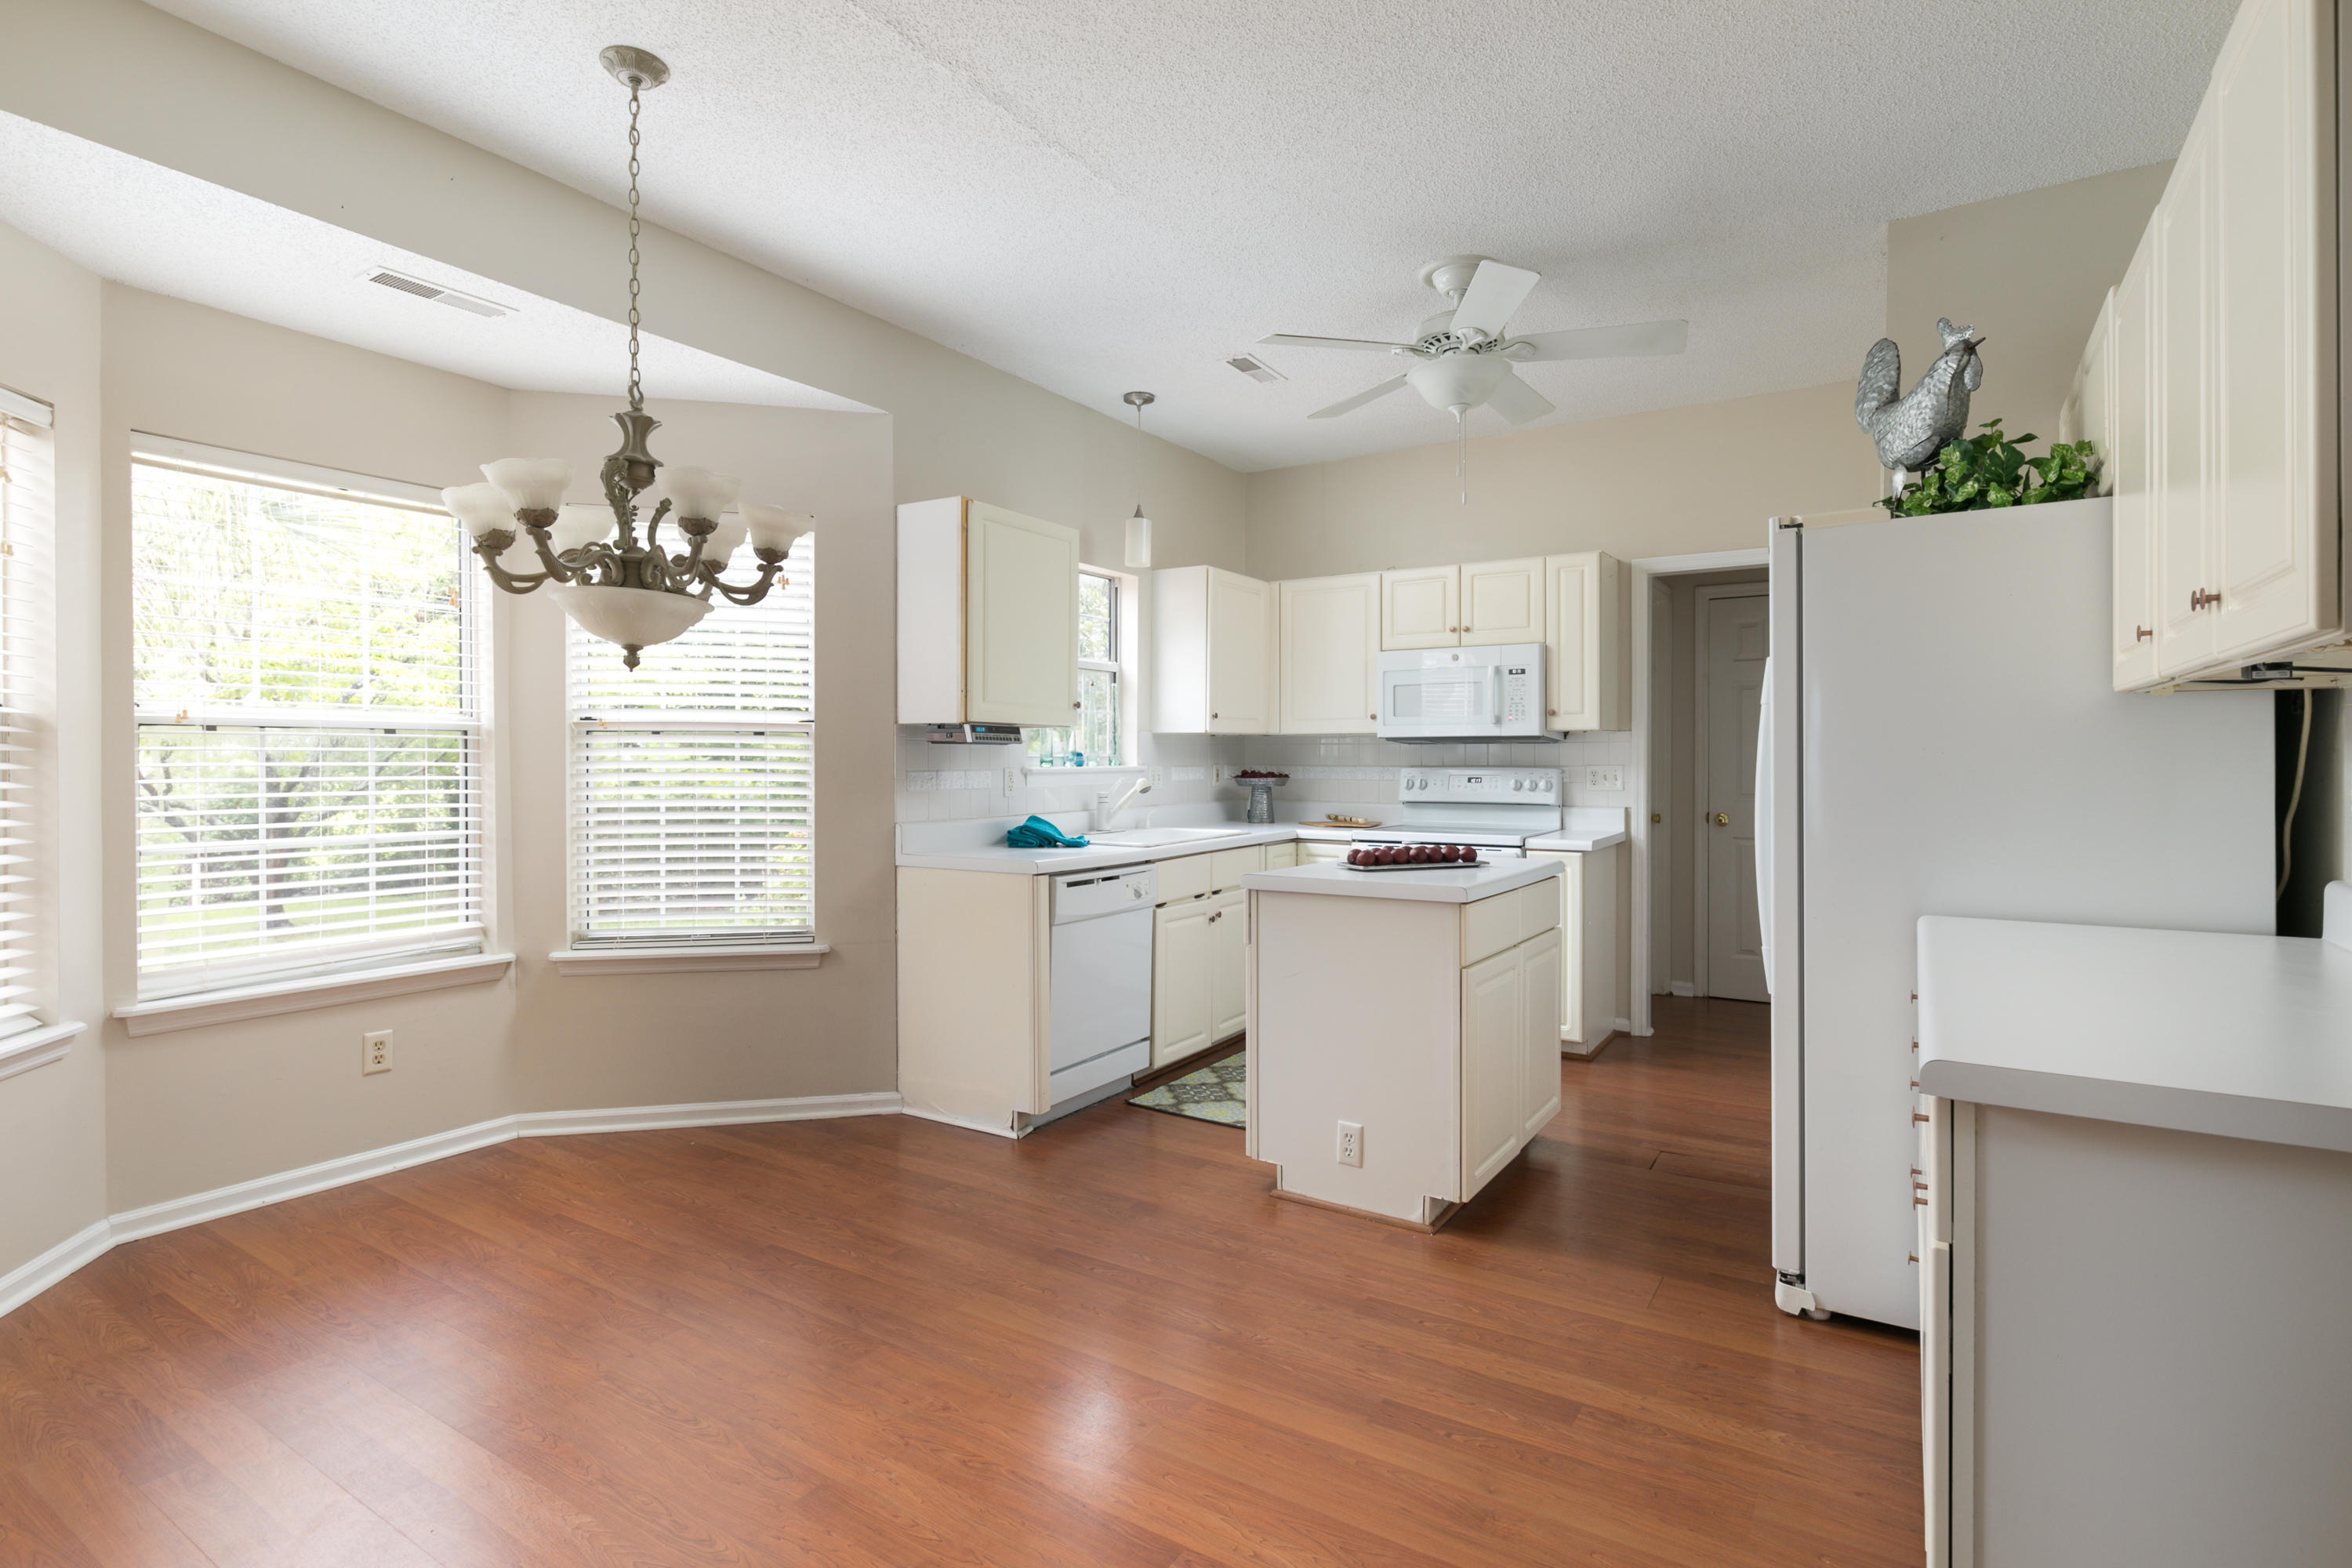 Sweetgrass Homes For Sale - 1899 Falling Creek, Mount Pleasant, SC - 0